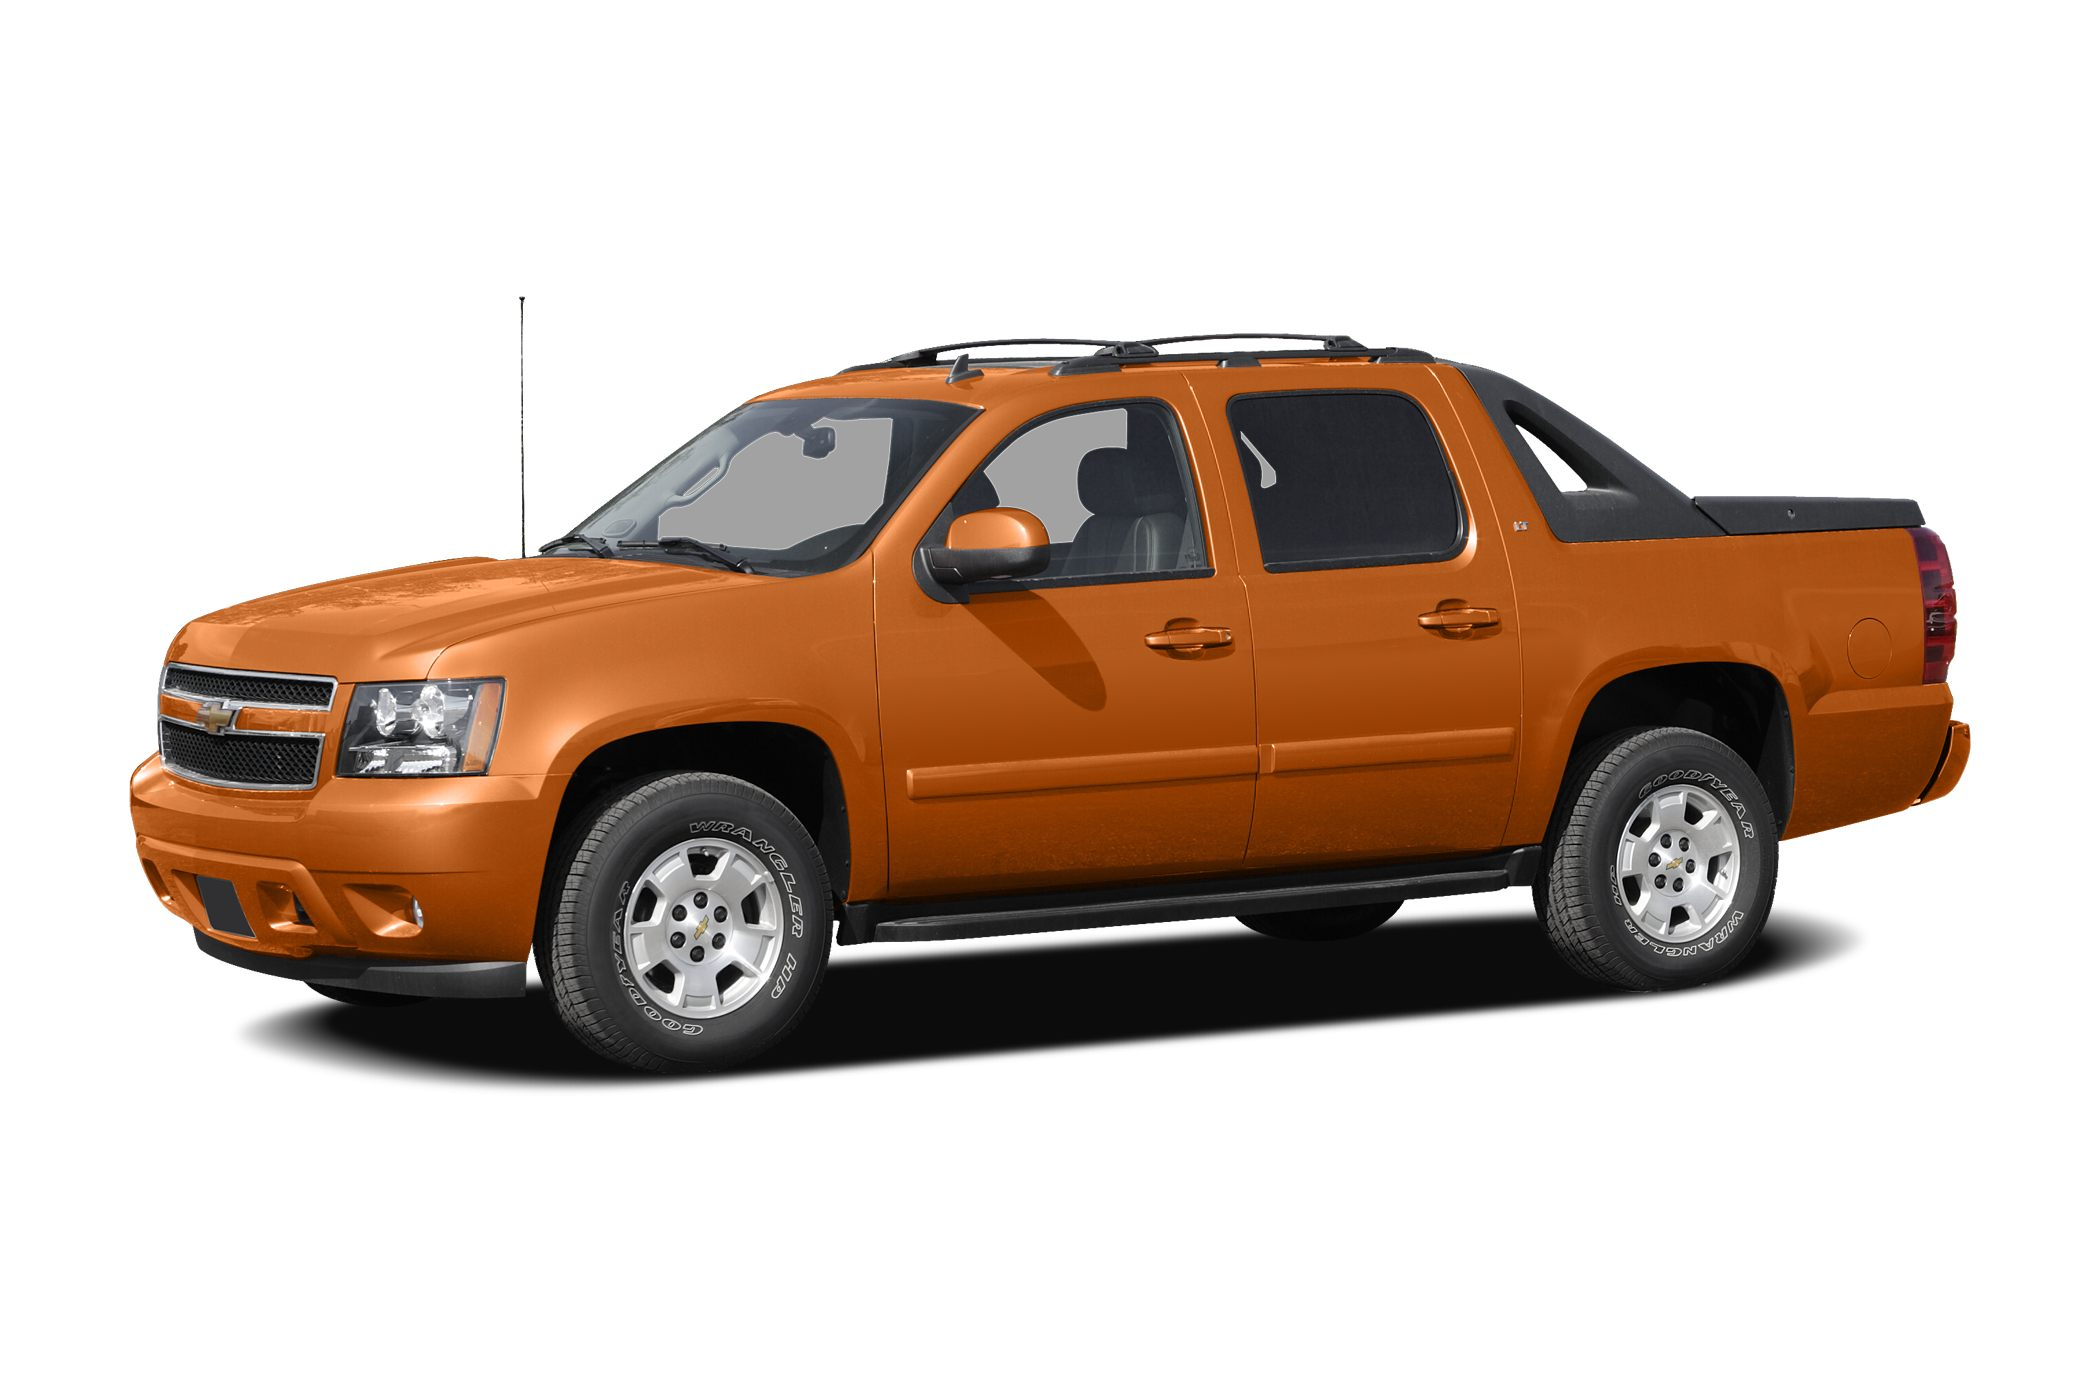 2007 Chevrolet Avalanche 1500 LTZ Crew Cab Pickup for sale in Ruston for $19,000 with 85,001 miles.